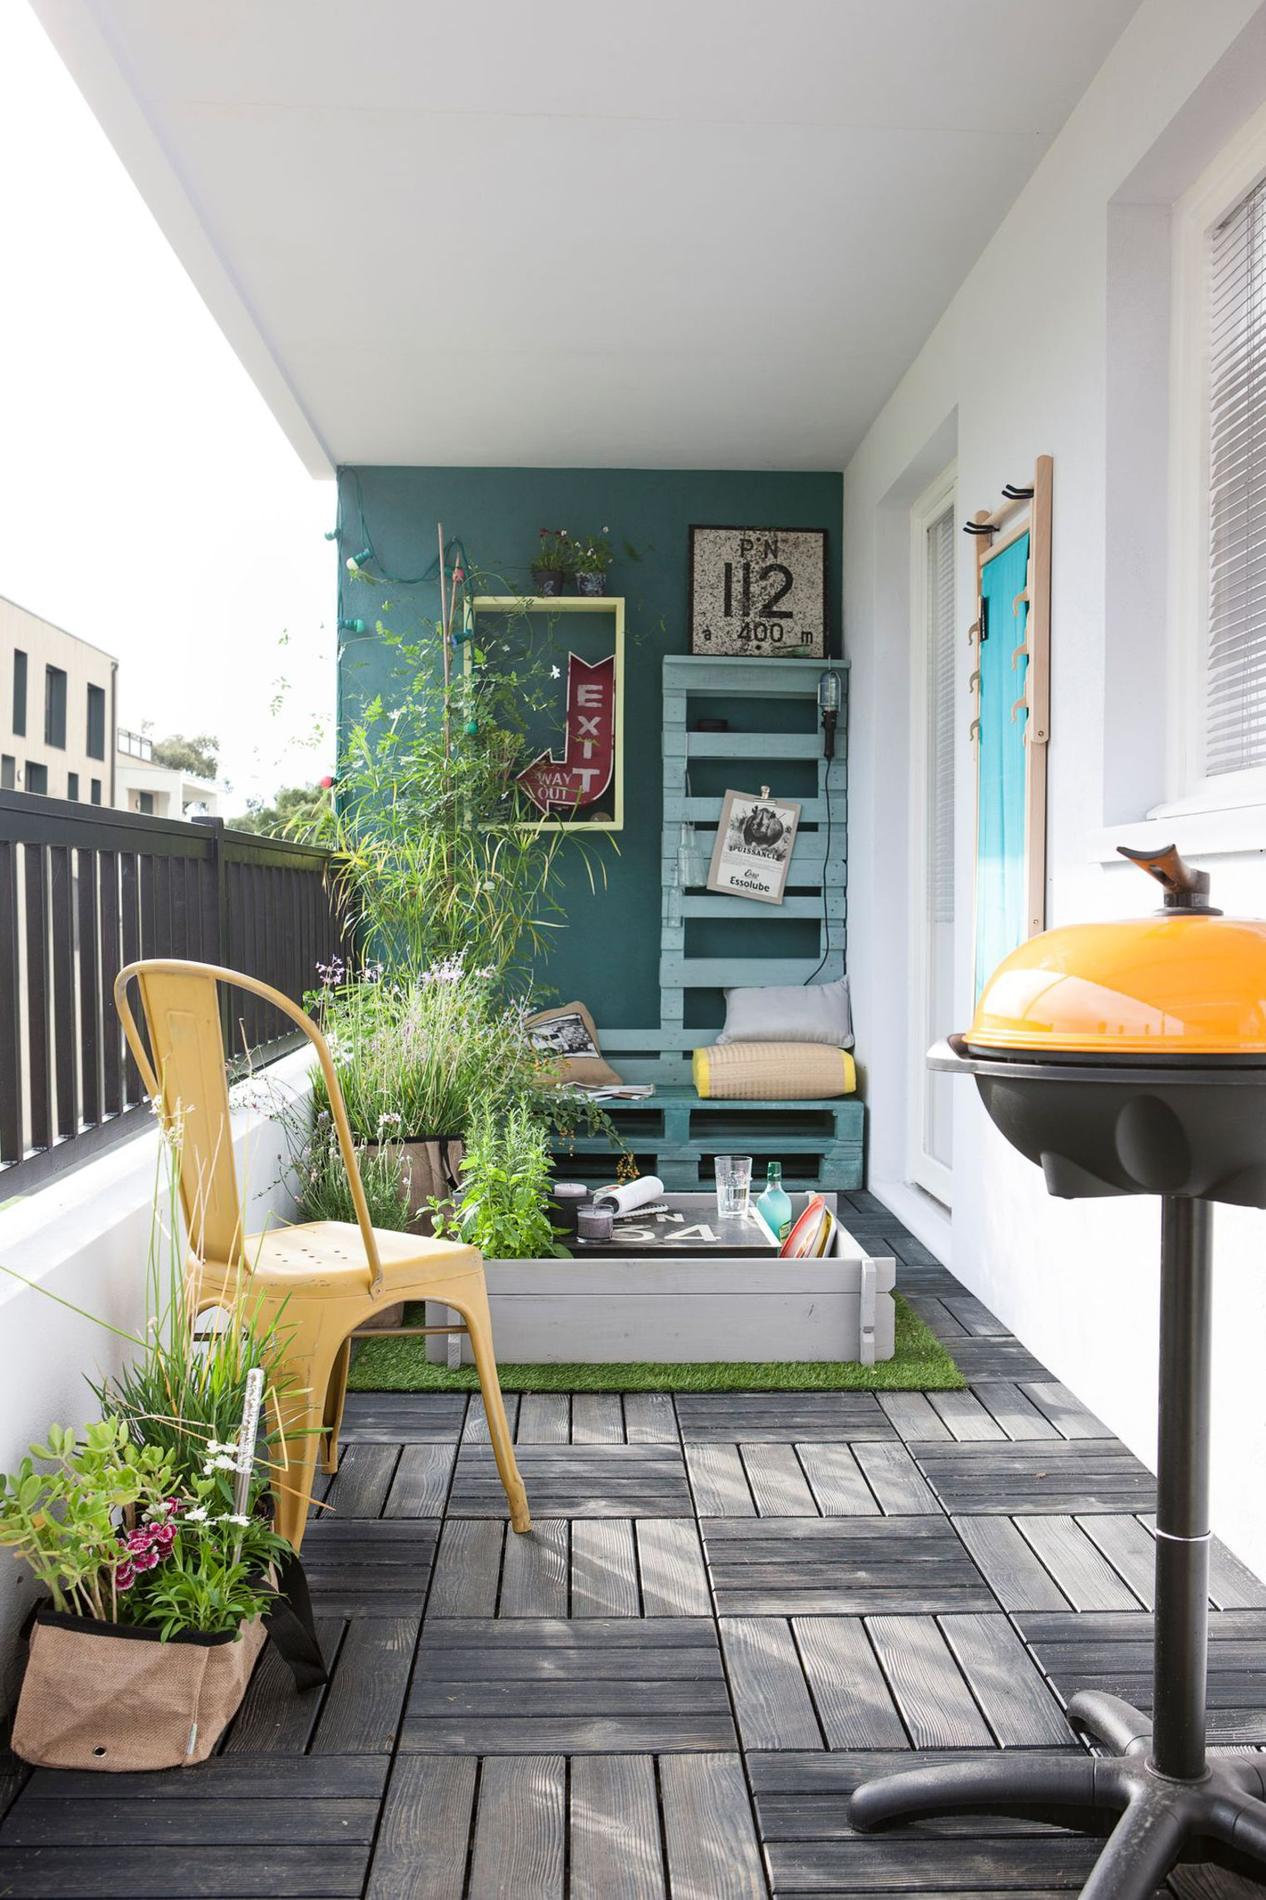 Comment donner du style vos balcons et terrasses madame for Deco terrasse design